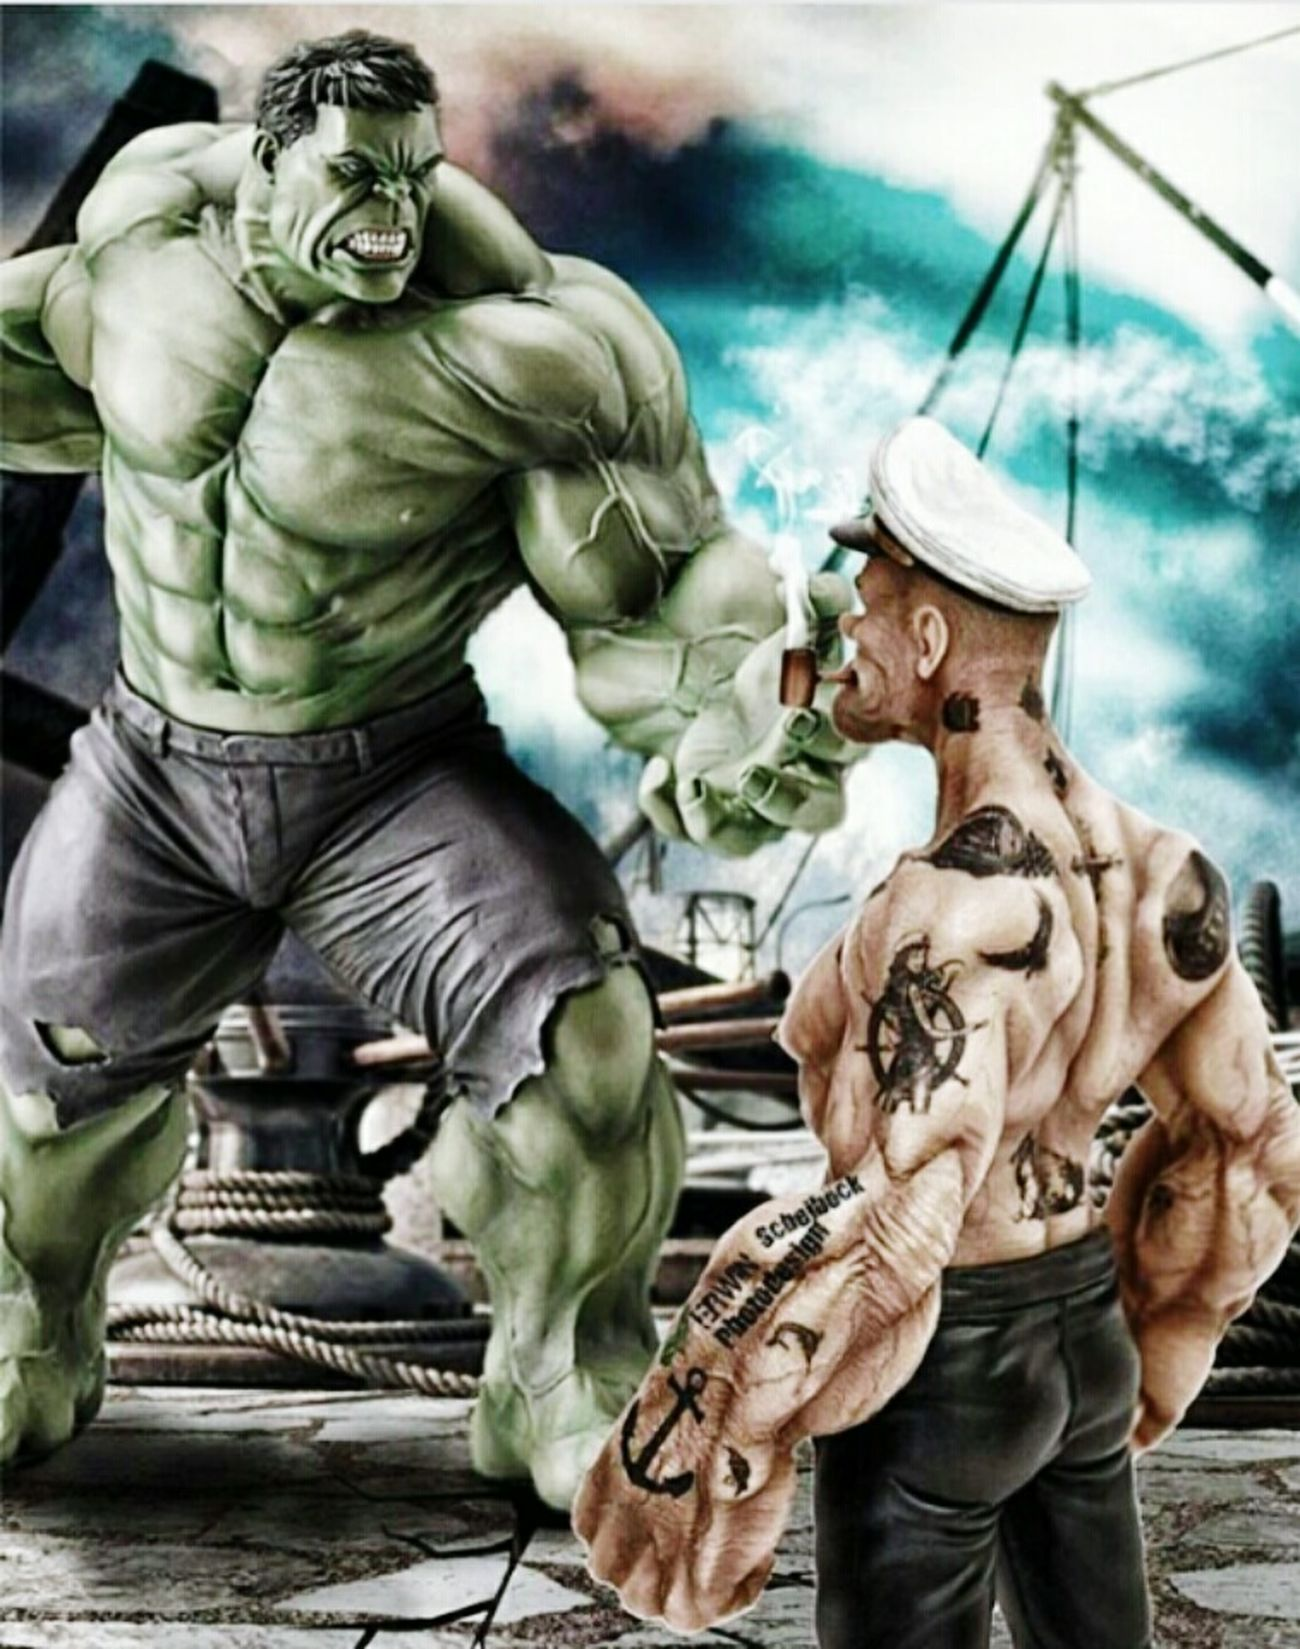 Hulk vs Popoye Gorilla Lifestyle Muscle 💪💪 HardBodies❤ Body & Fitness SuicideGirls